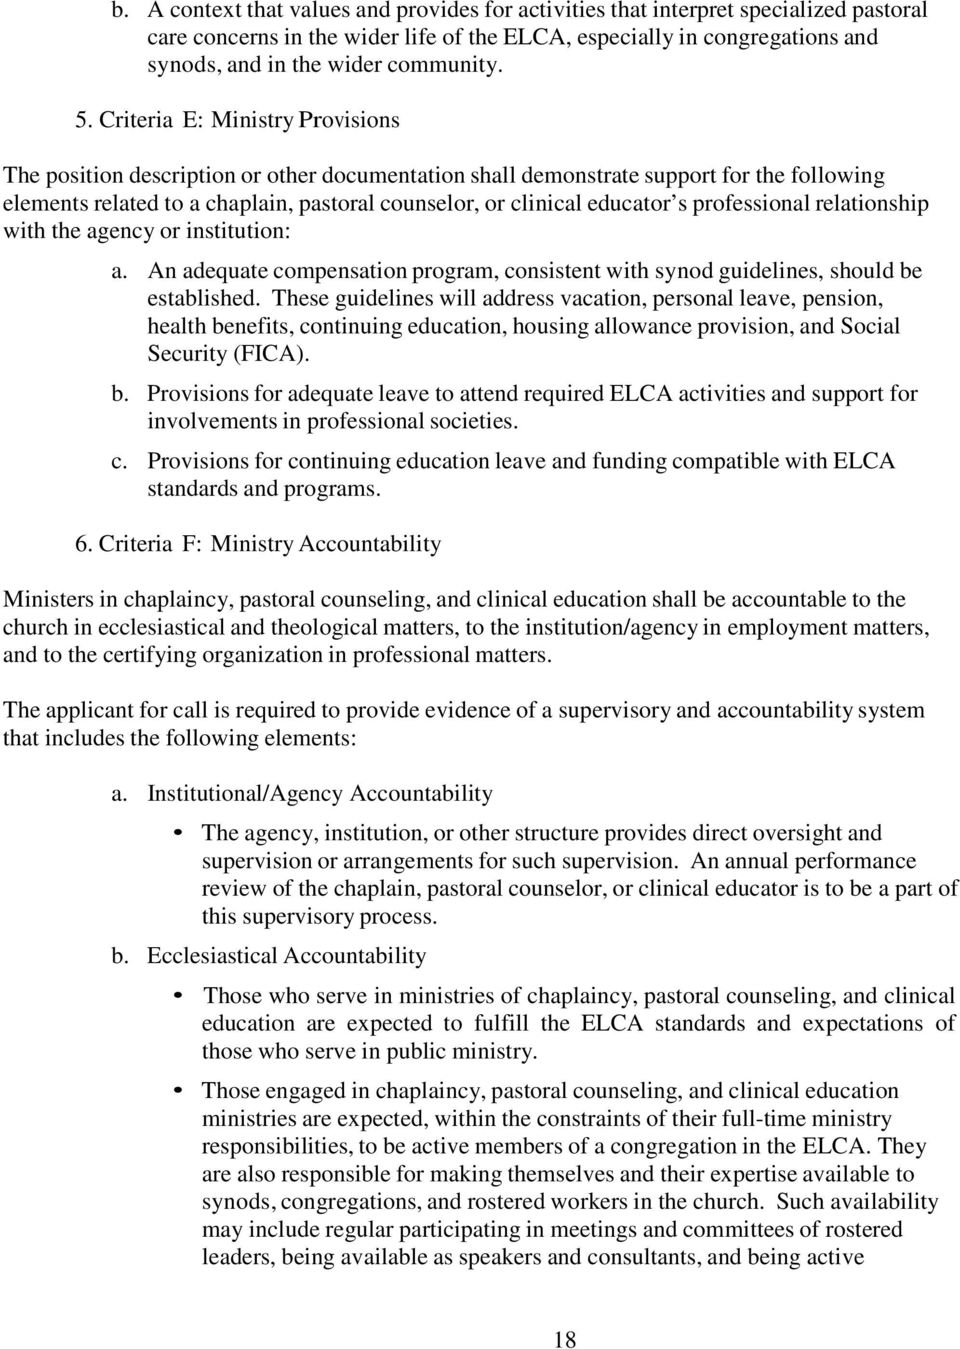 Criteria E: Ministry Provisions The position description or other documentation shall demonstrate support for the following elements related to a chaplain, pastoral counselor, or clinical educator s